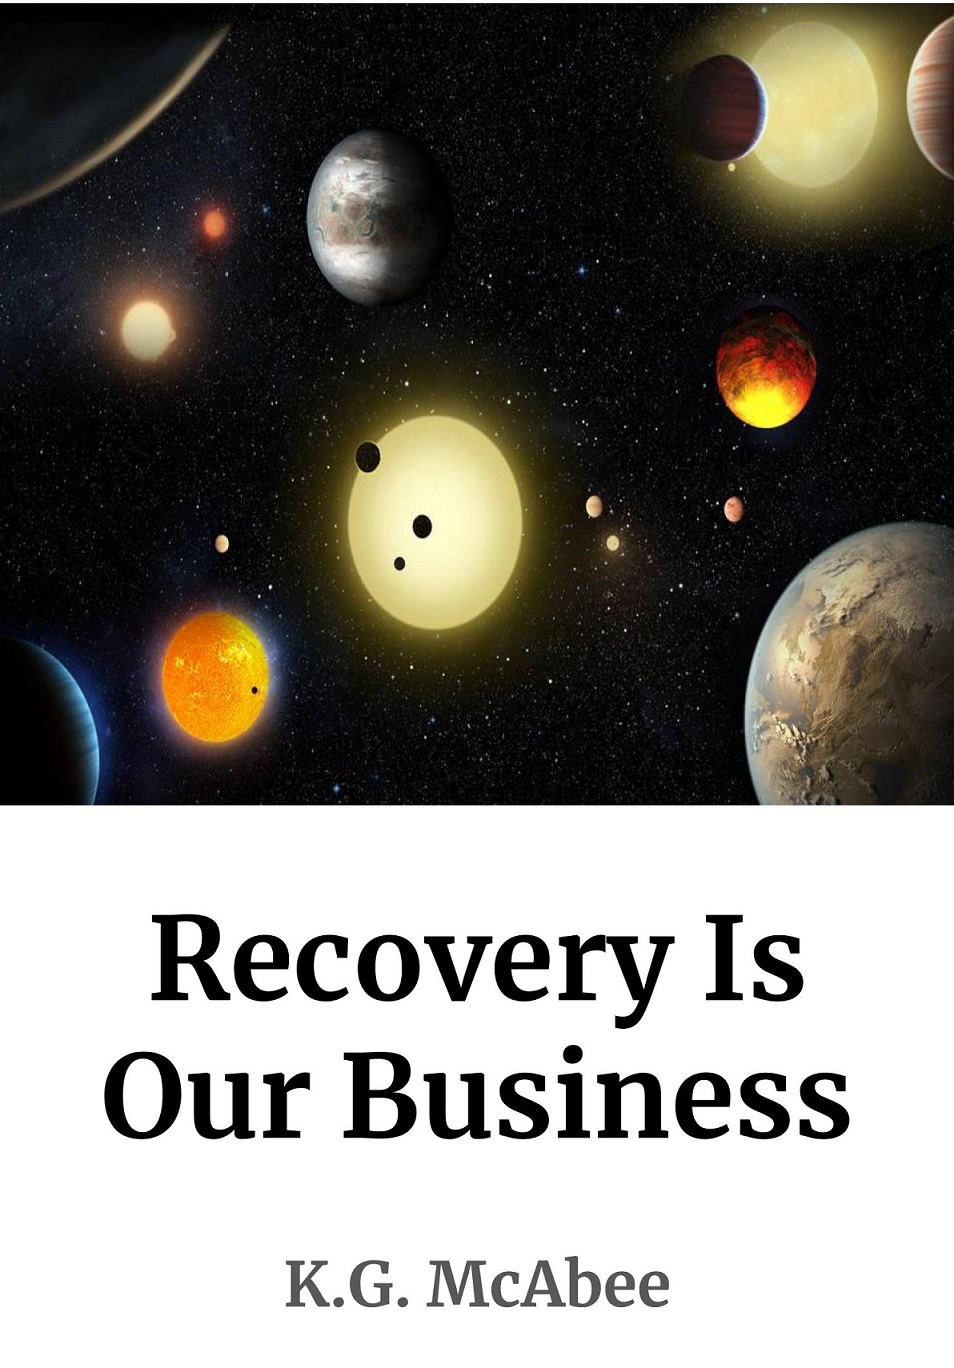 Recovery Is Our Business Image